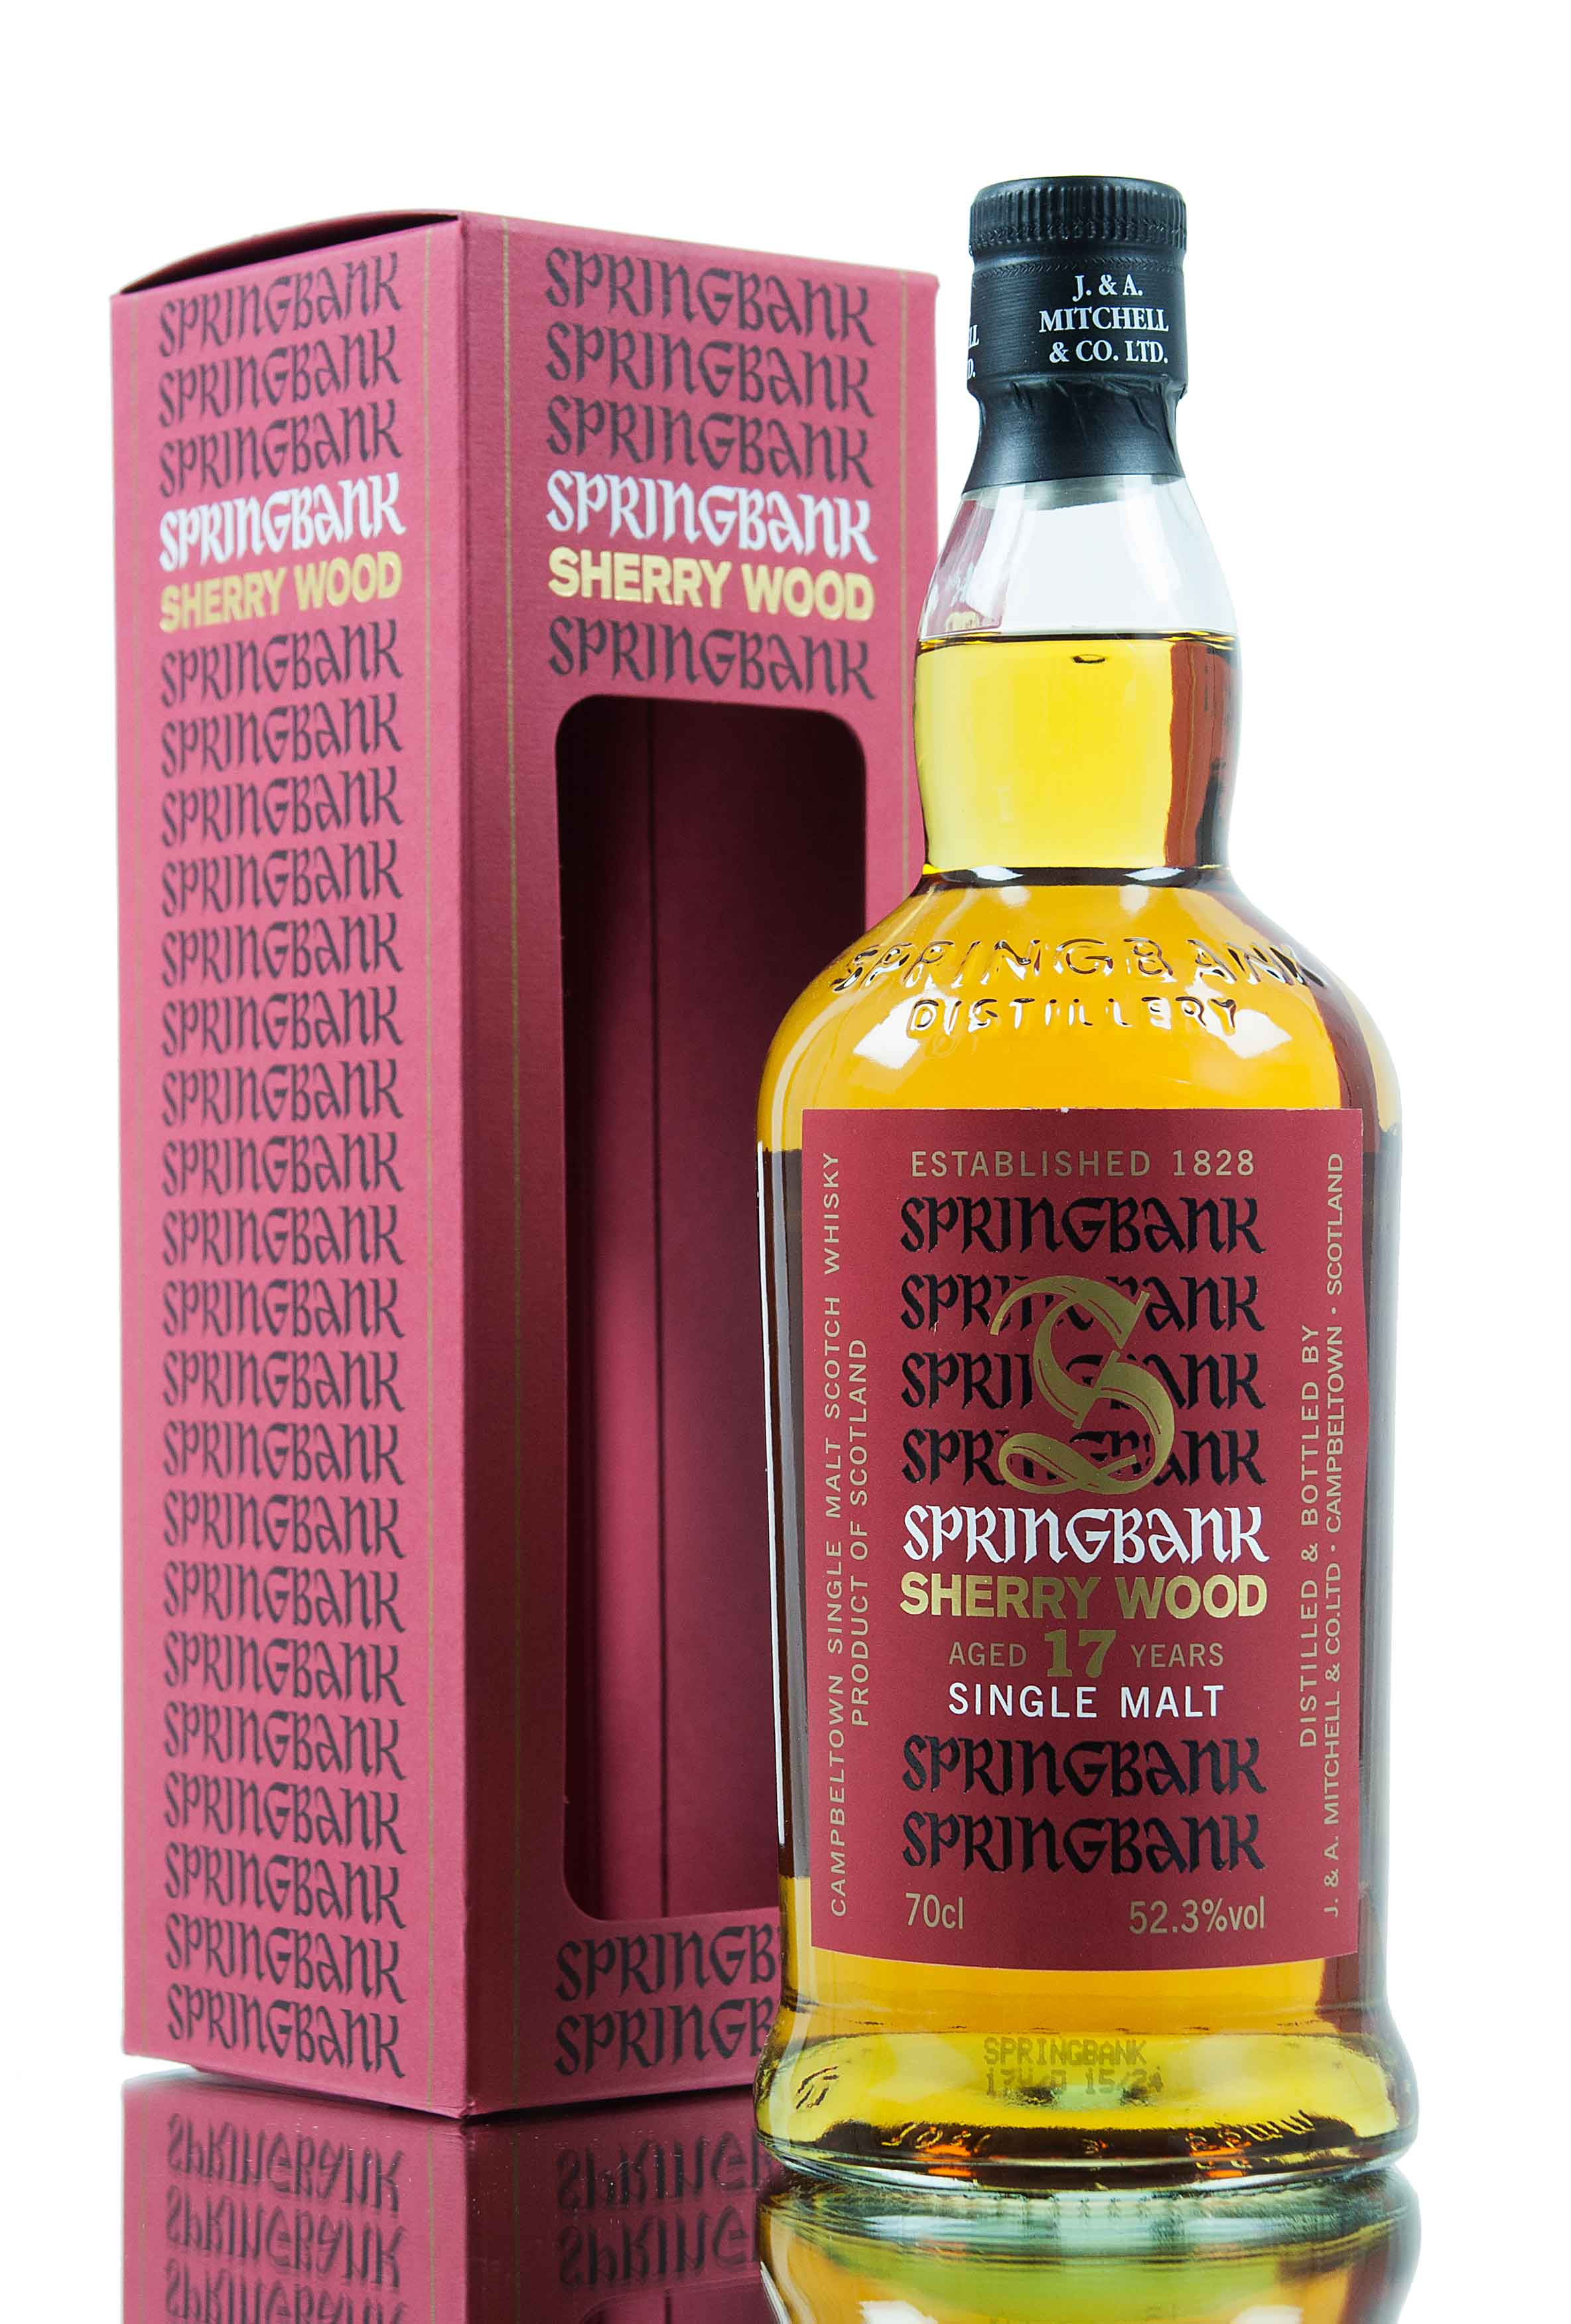 Springbank 17 Year Old - Sherry Wood